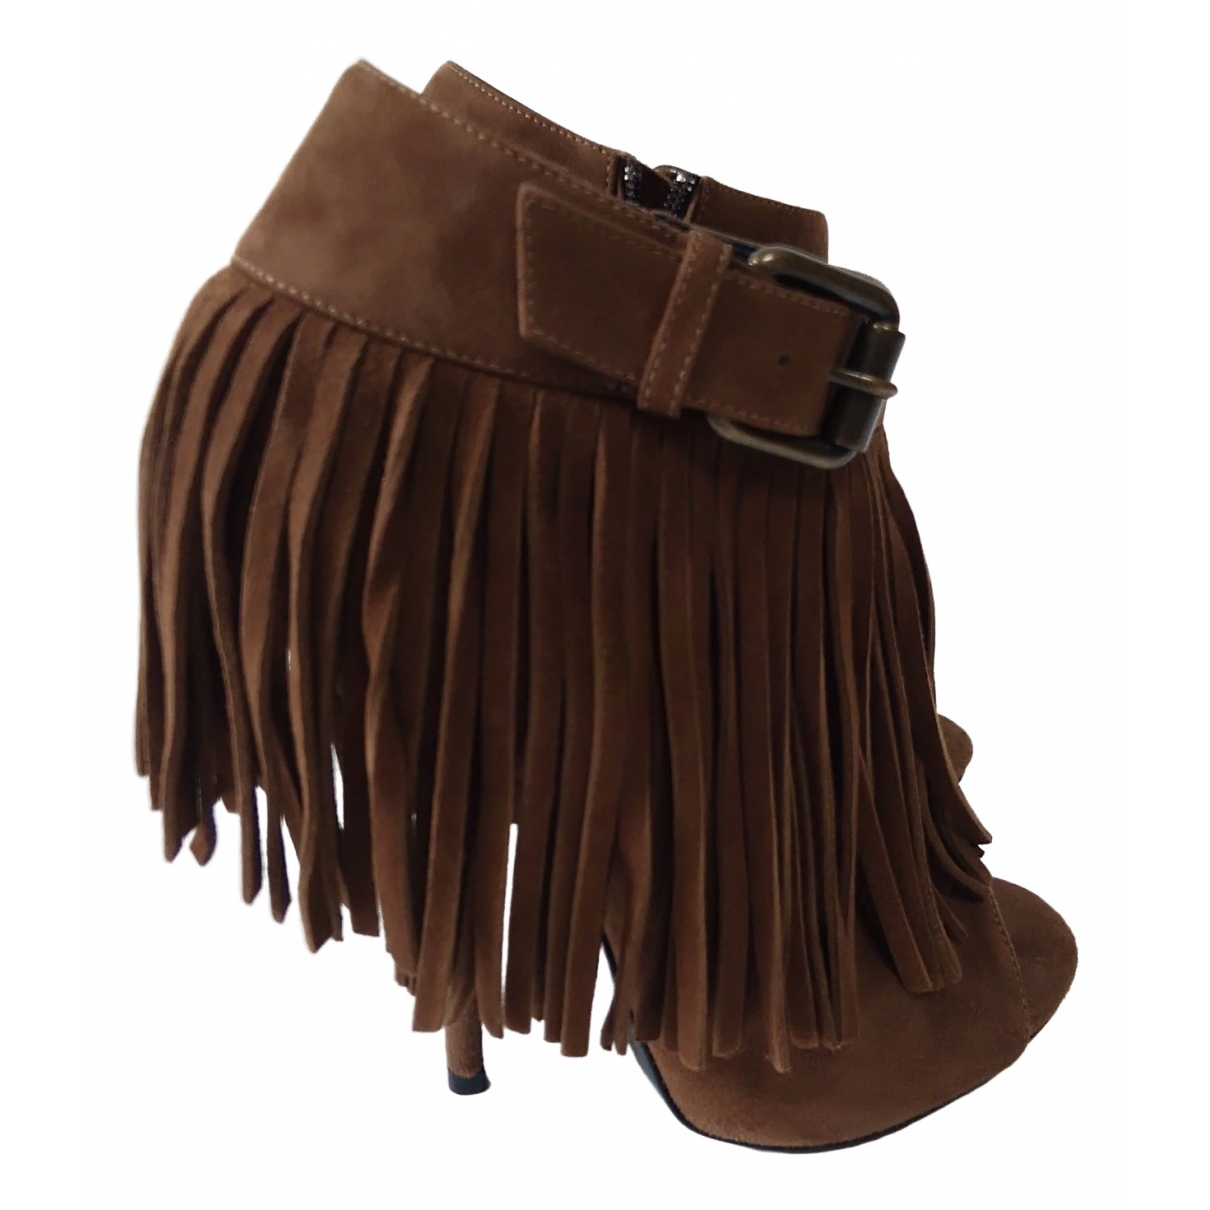 Giuseppe Zanotti \N Brown Suede Ankle boots for Women 37.5 EU